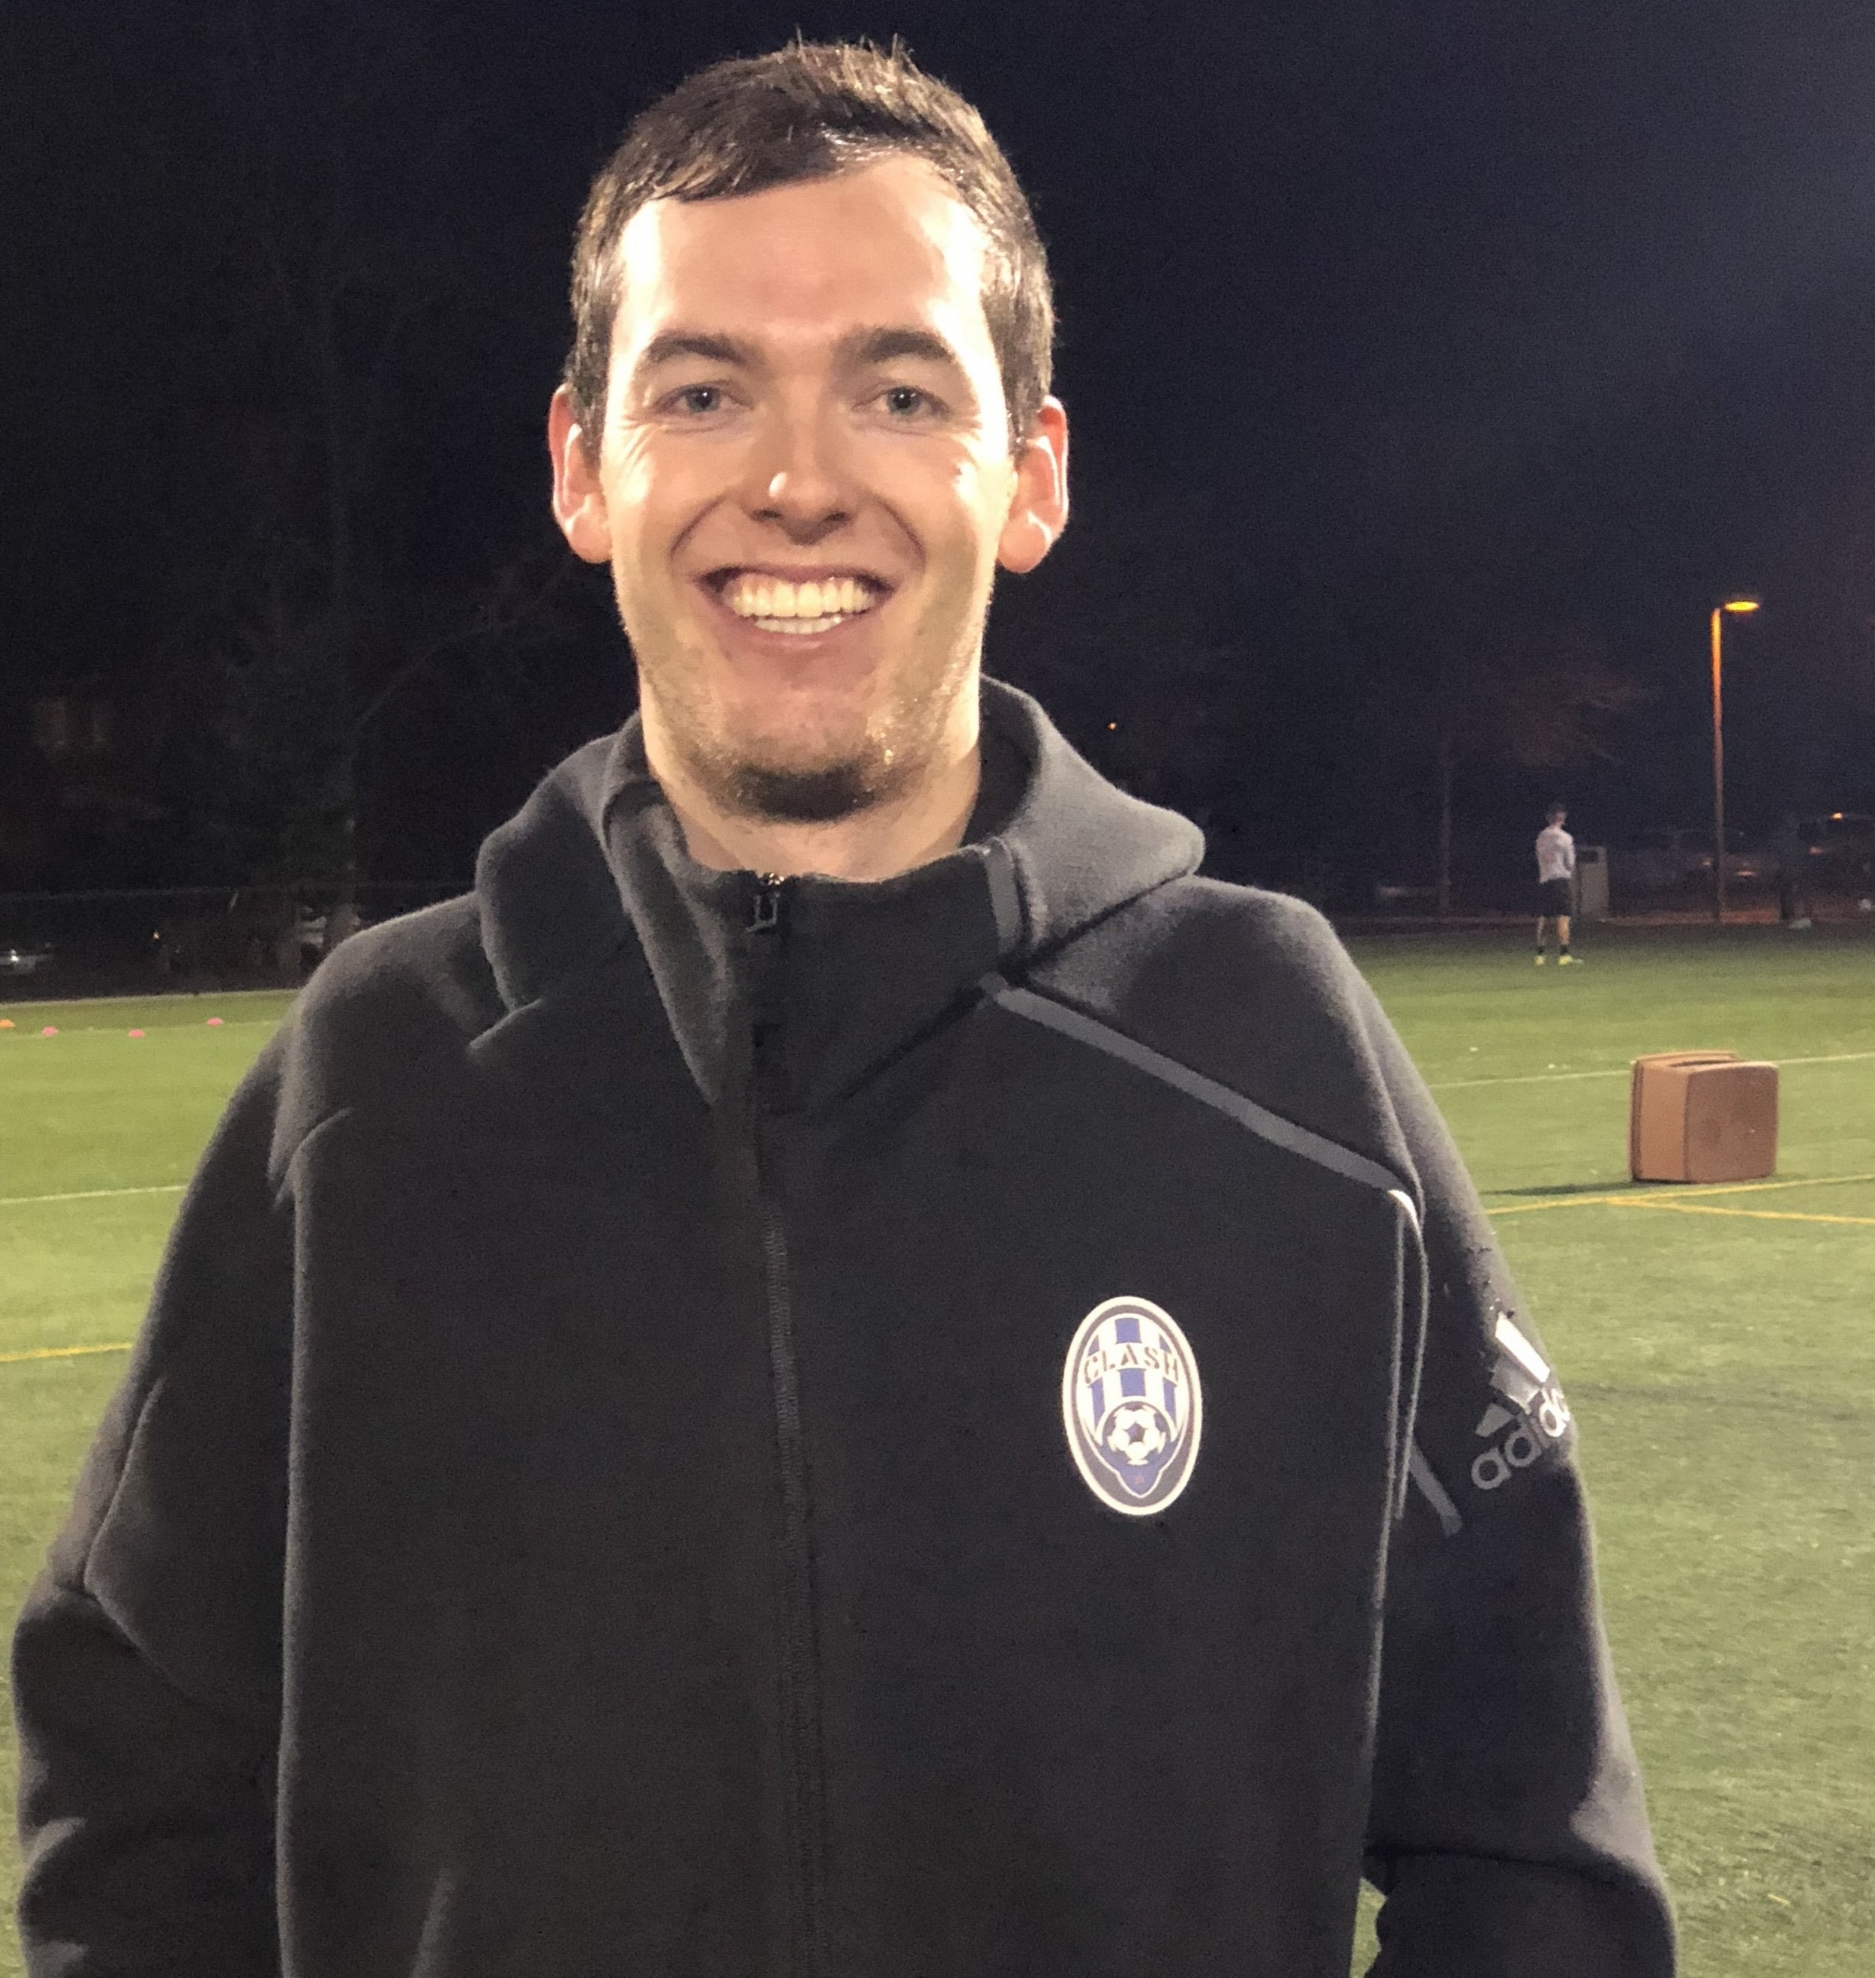 The First Ever ProUSA Employee We've Loved Having Saratoga Soccer Club Clash 05B Blue Head Coach Max Dorling be a Part of Our Journey so Far!